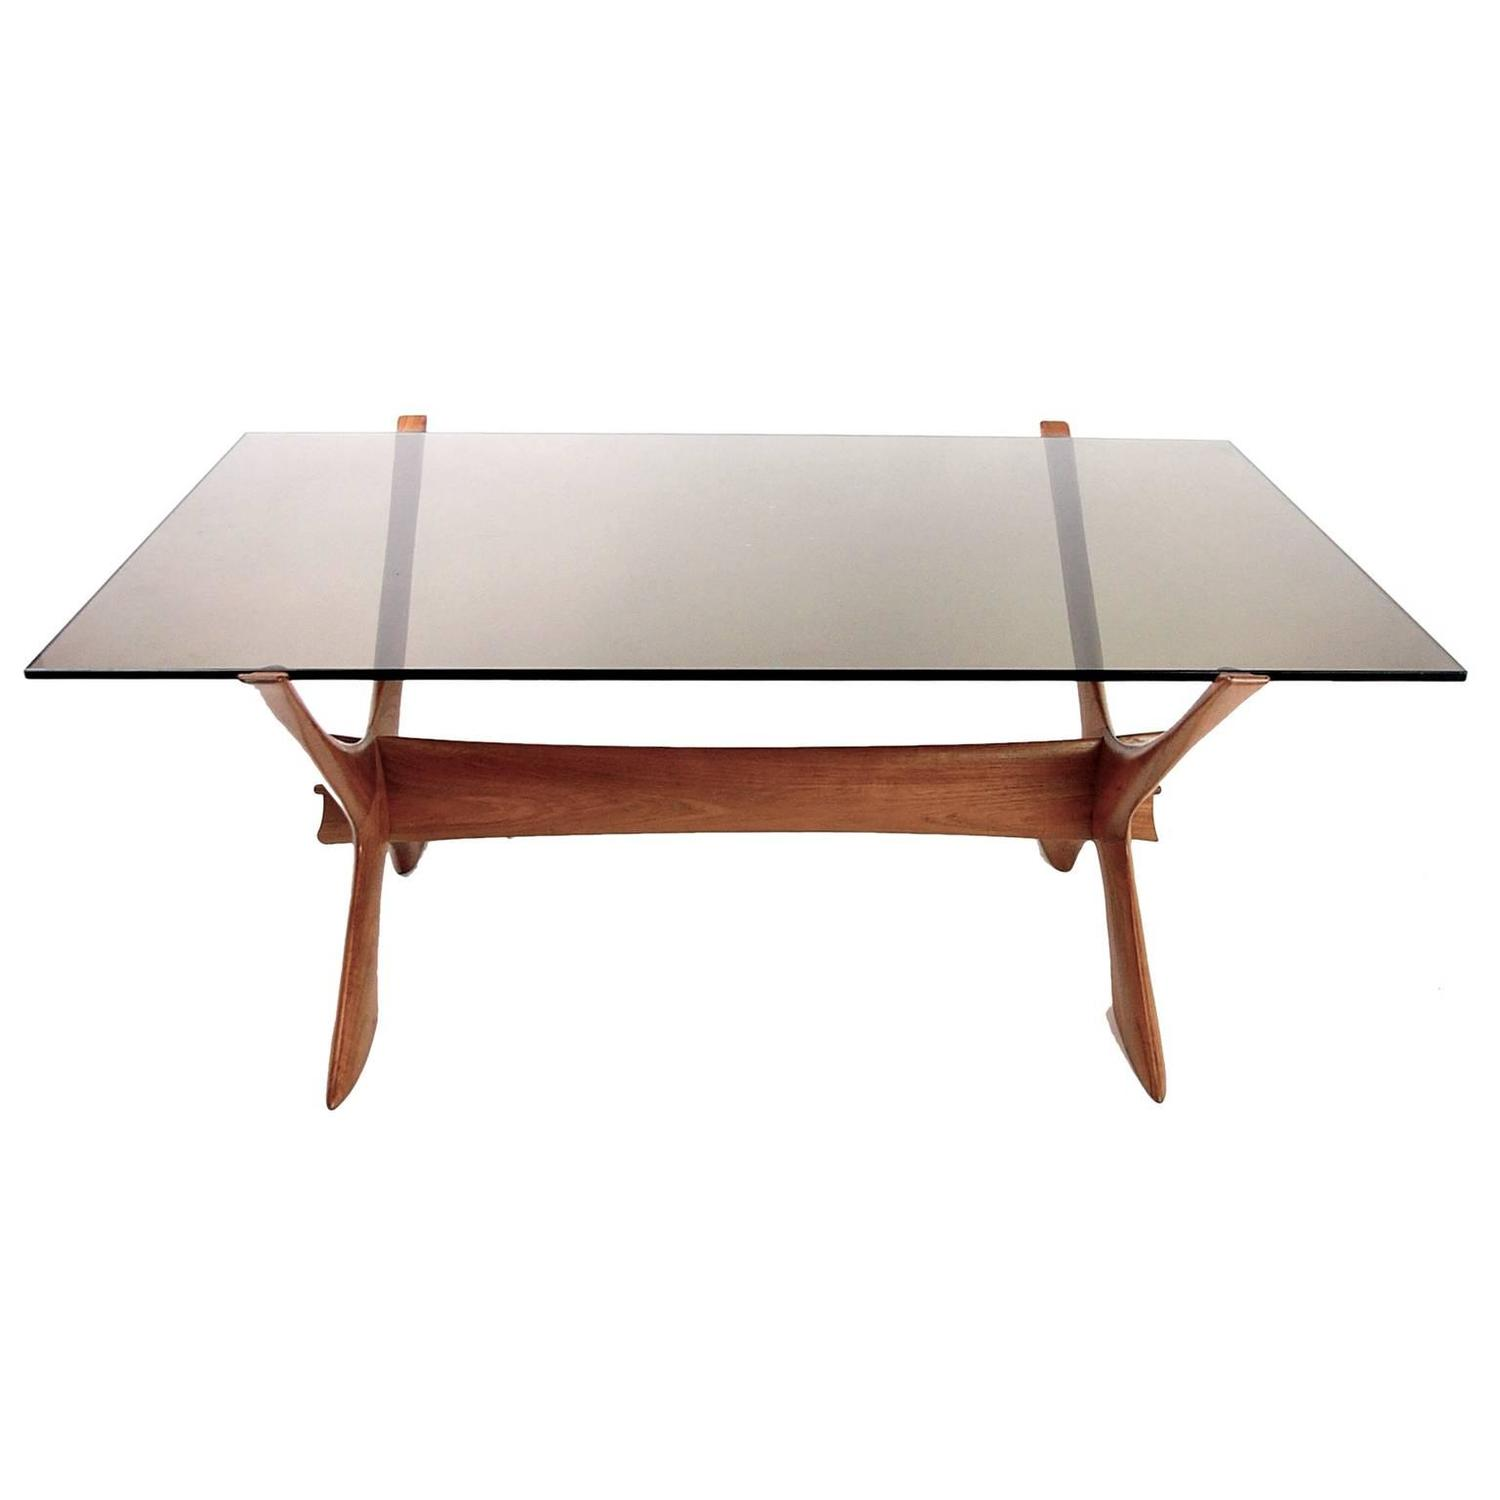 Modern Teak And Smokey Glass X Base Coffee Table By Fredrik Schriever Abeln For Sale At 1stdibs